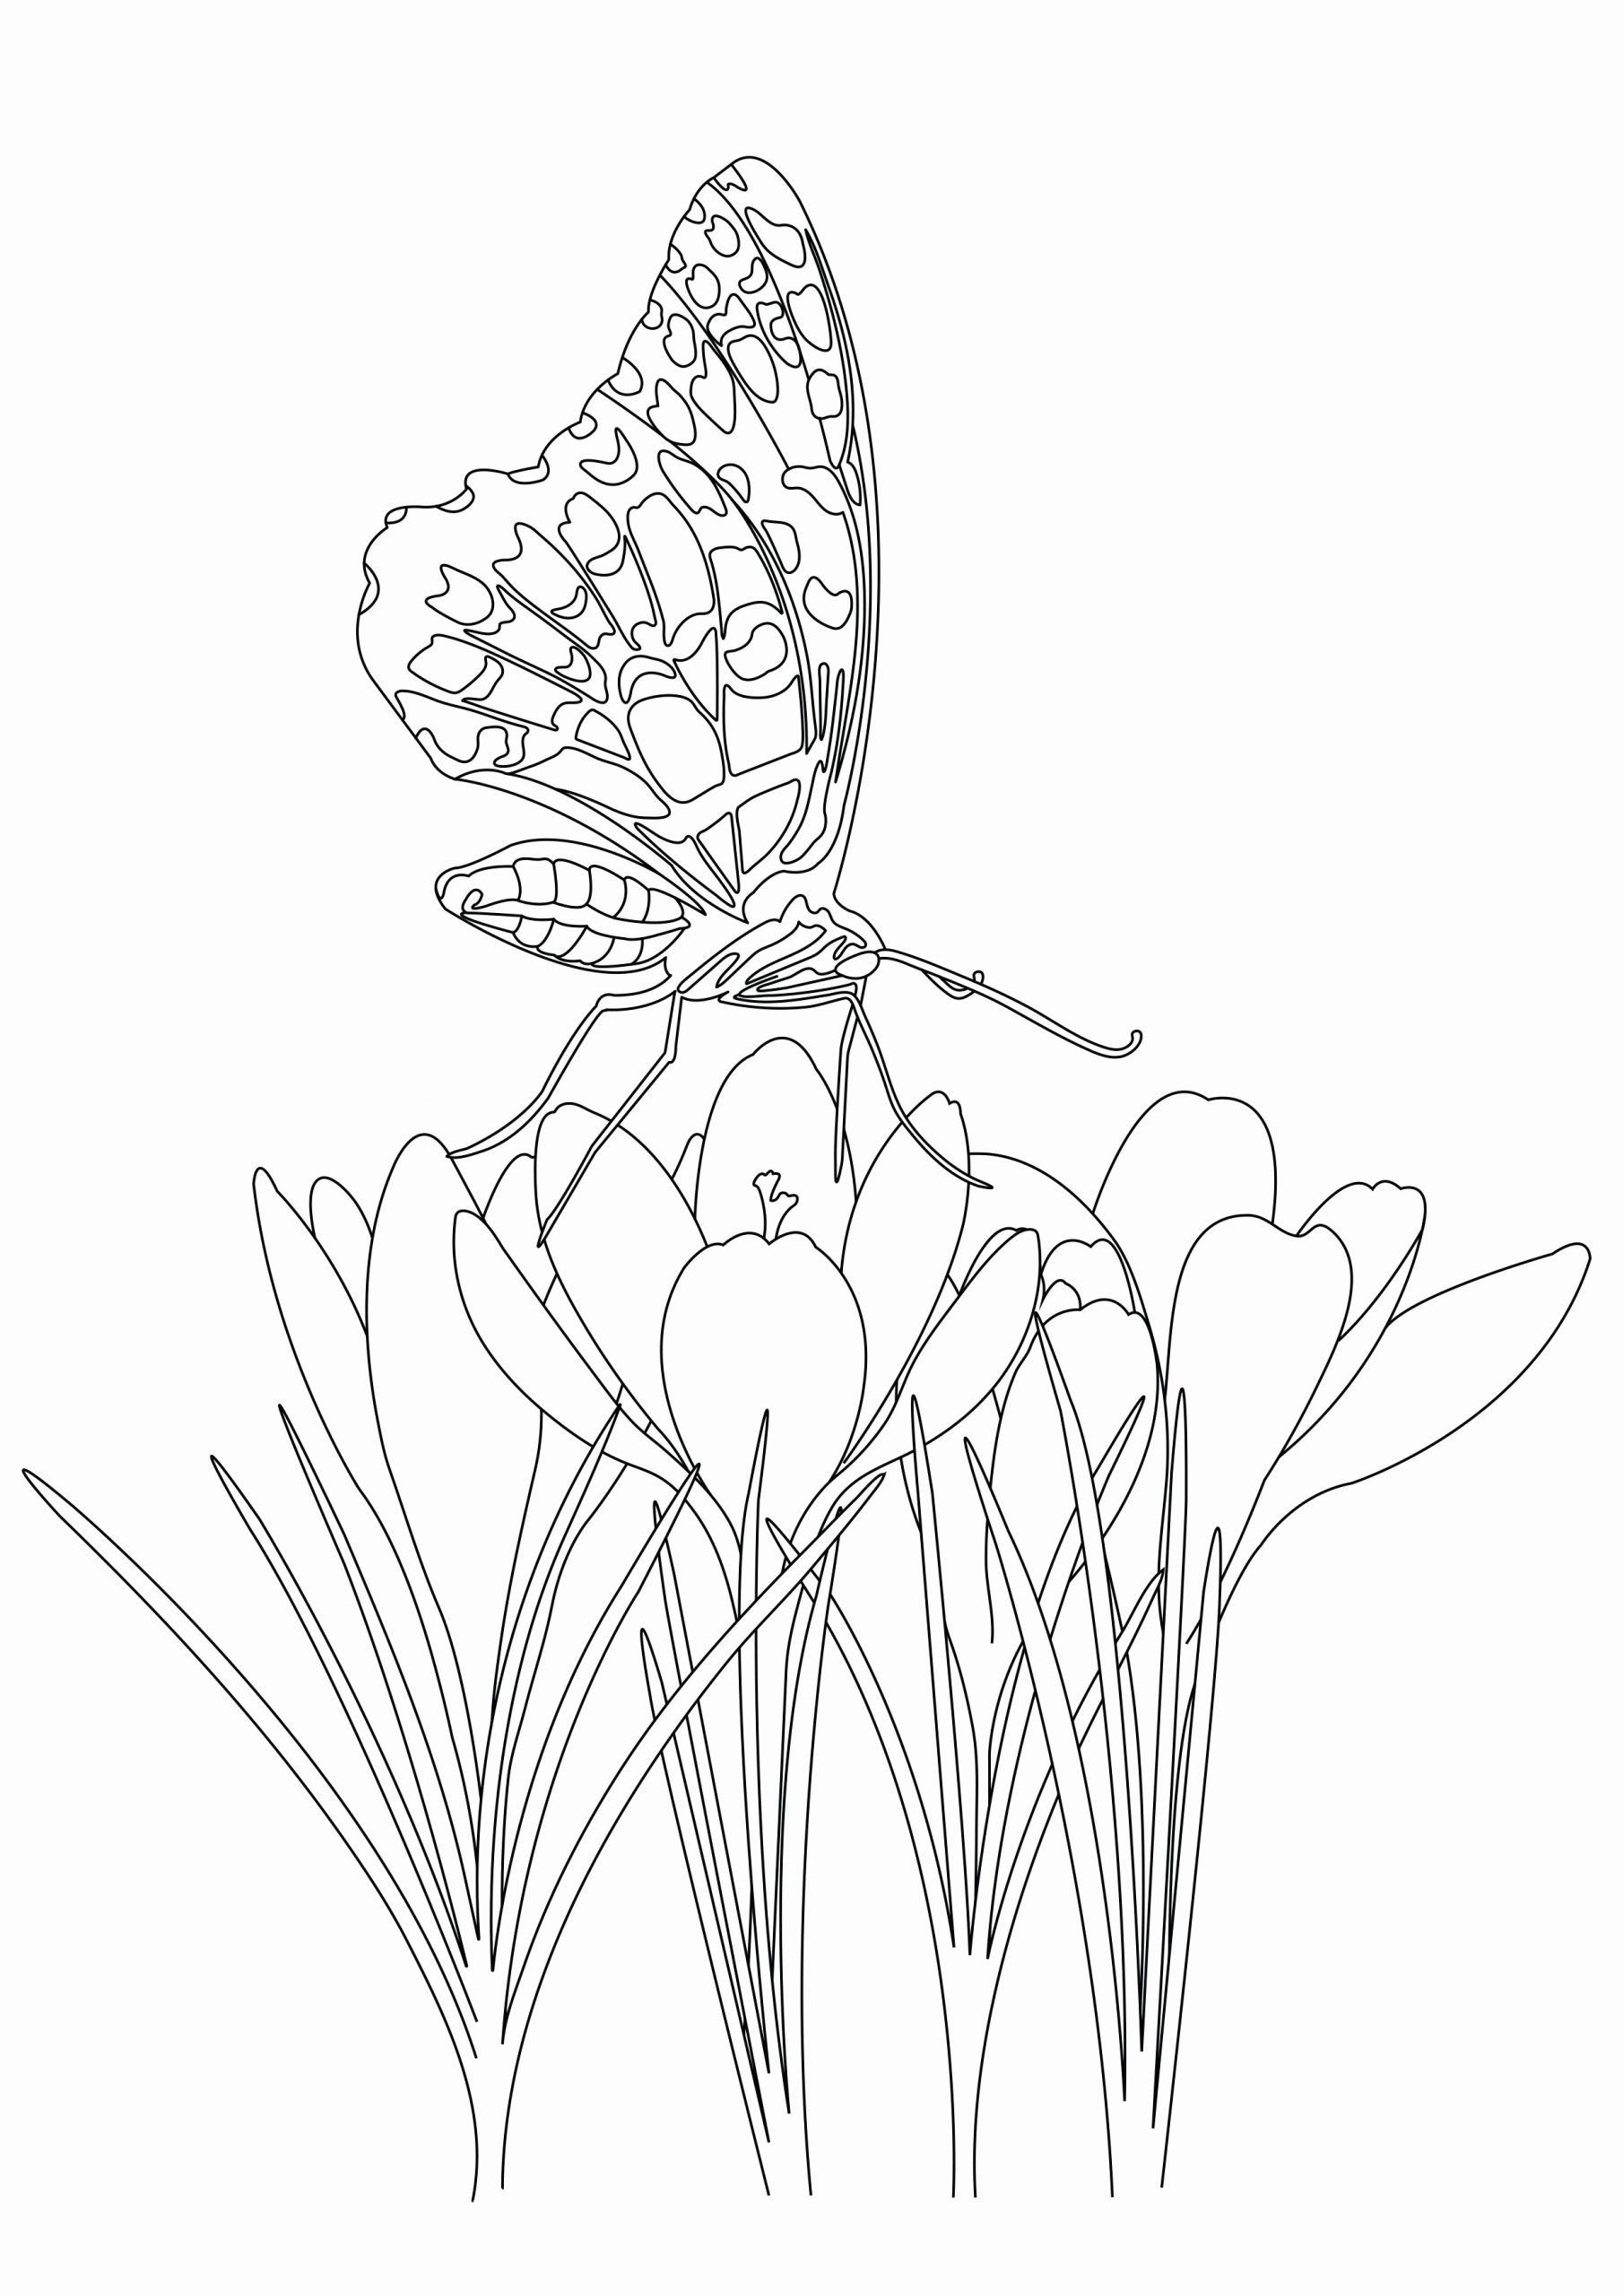 Coloring Book Flowers And Butterflies Inspirational Butterfly Under Flowers From The Color Animal Coloring Pages Butterfly Coloring Page Mandala Coloring Pages